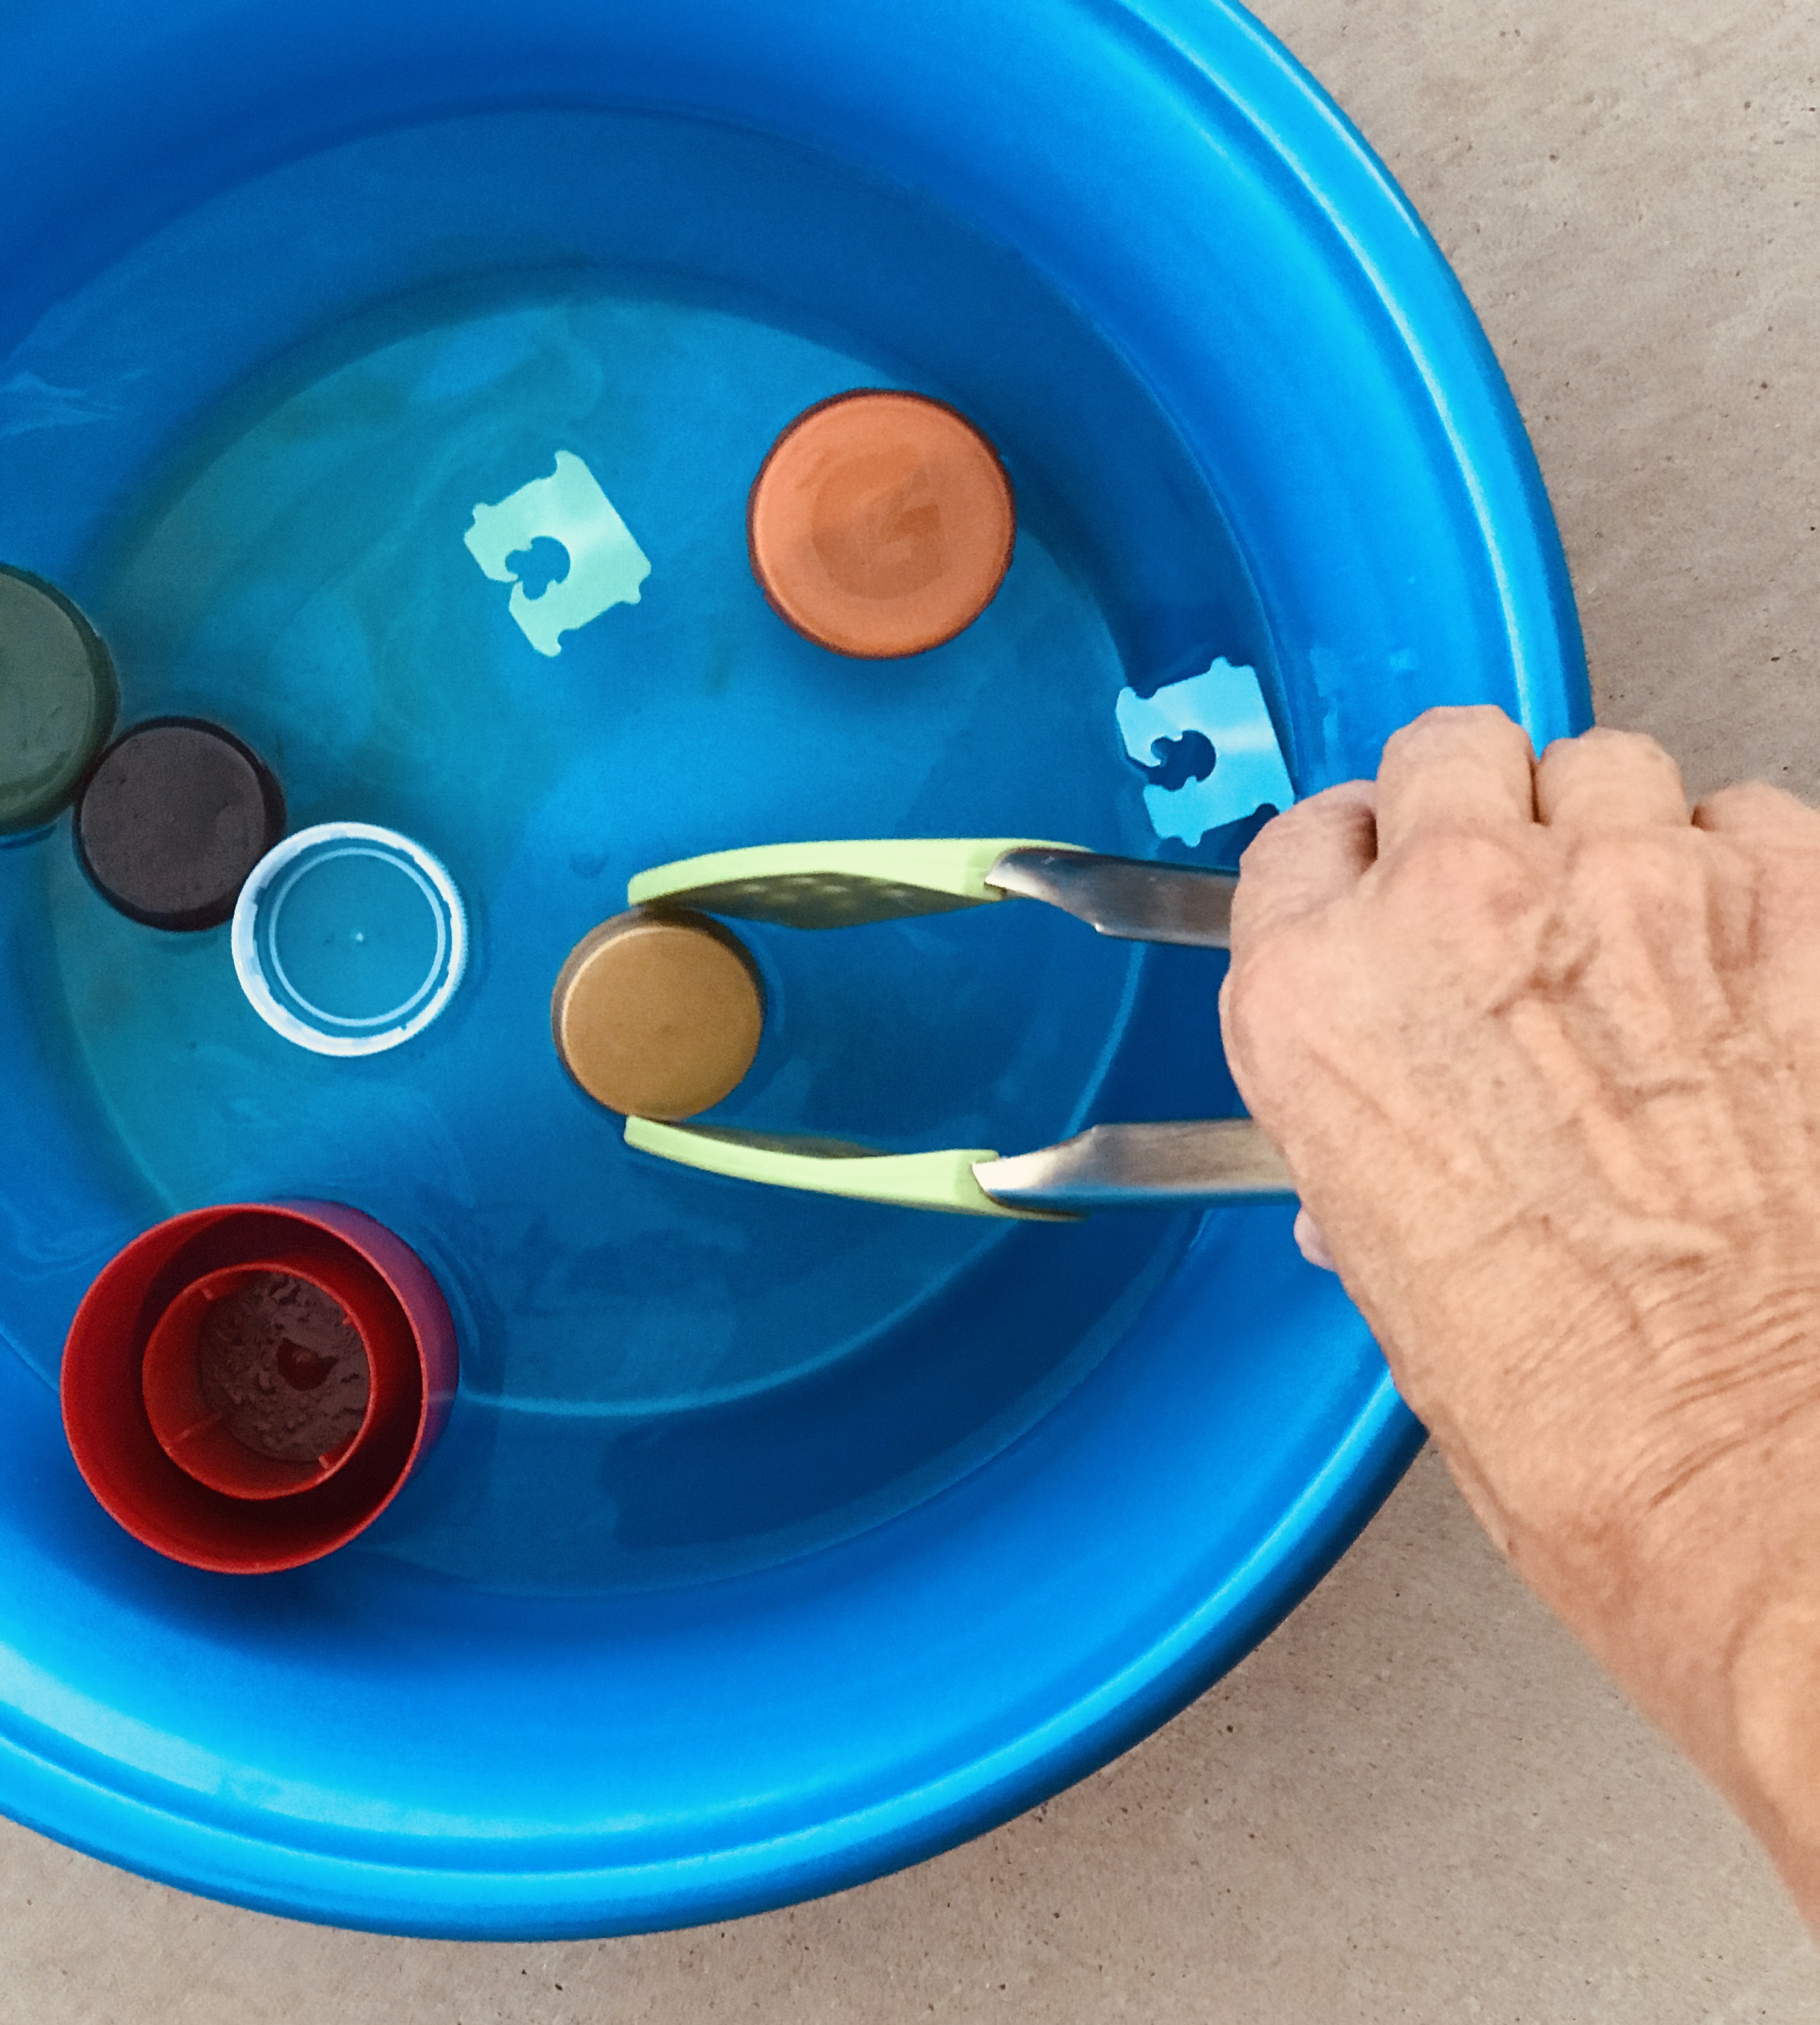 Picking up floating plastic items in water bin with tongs